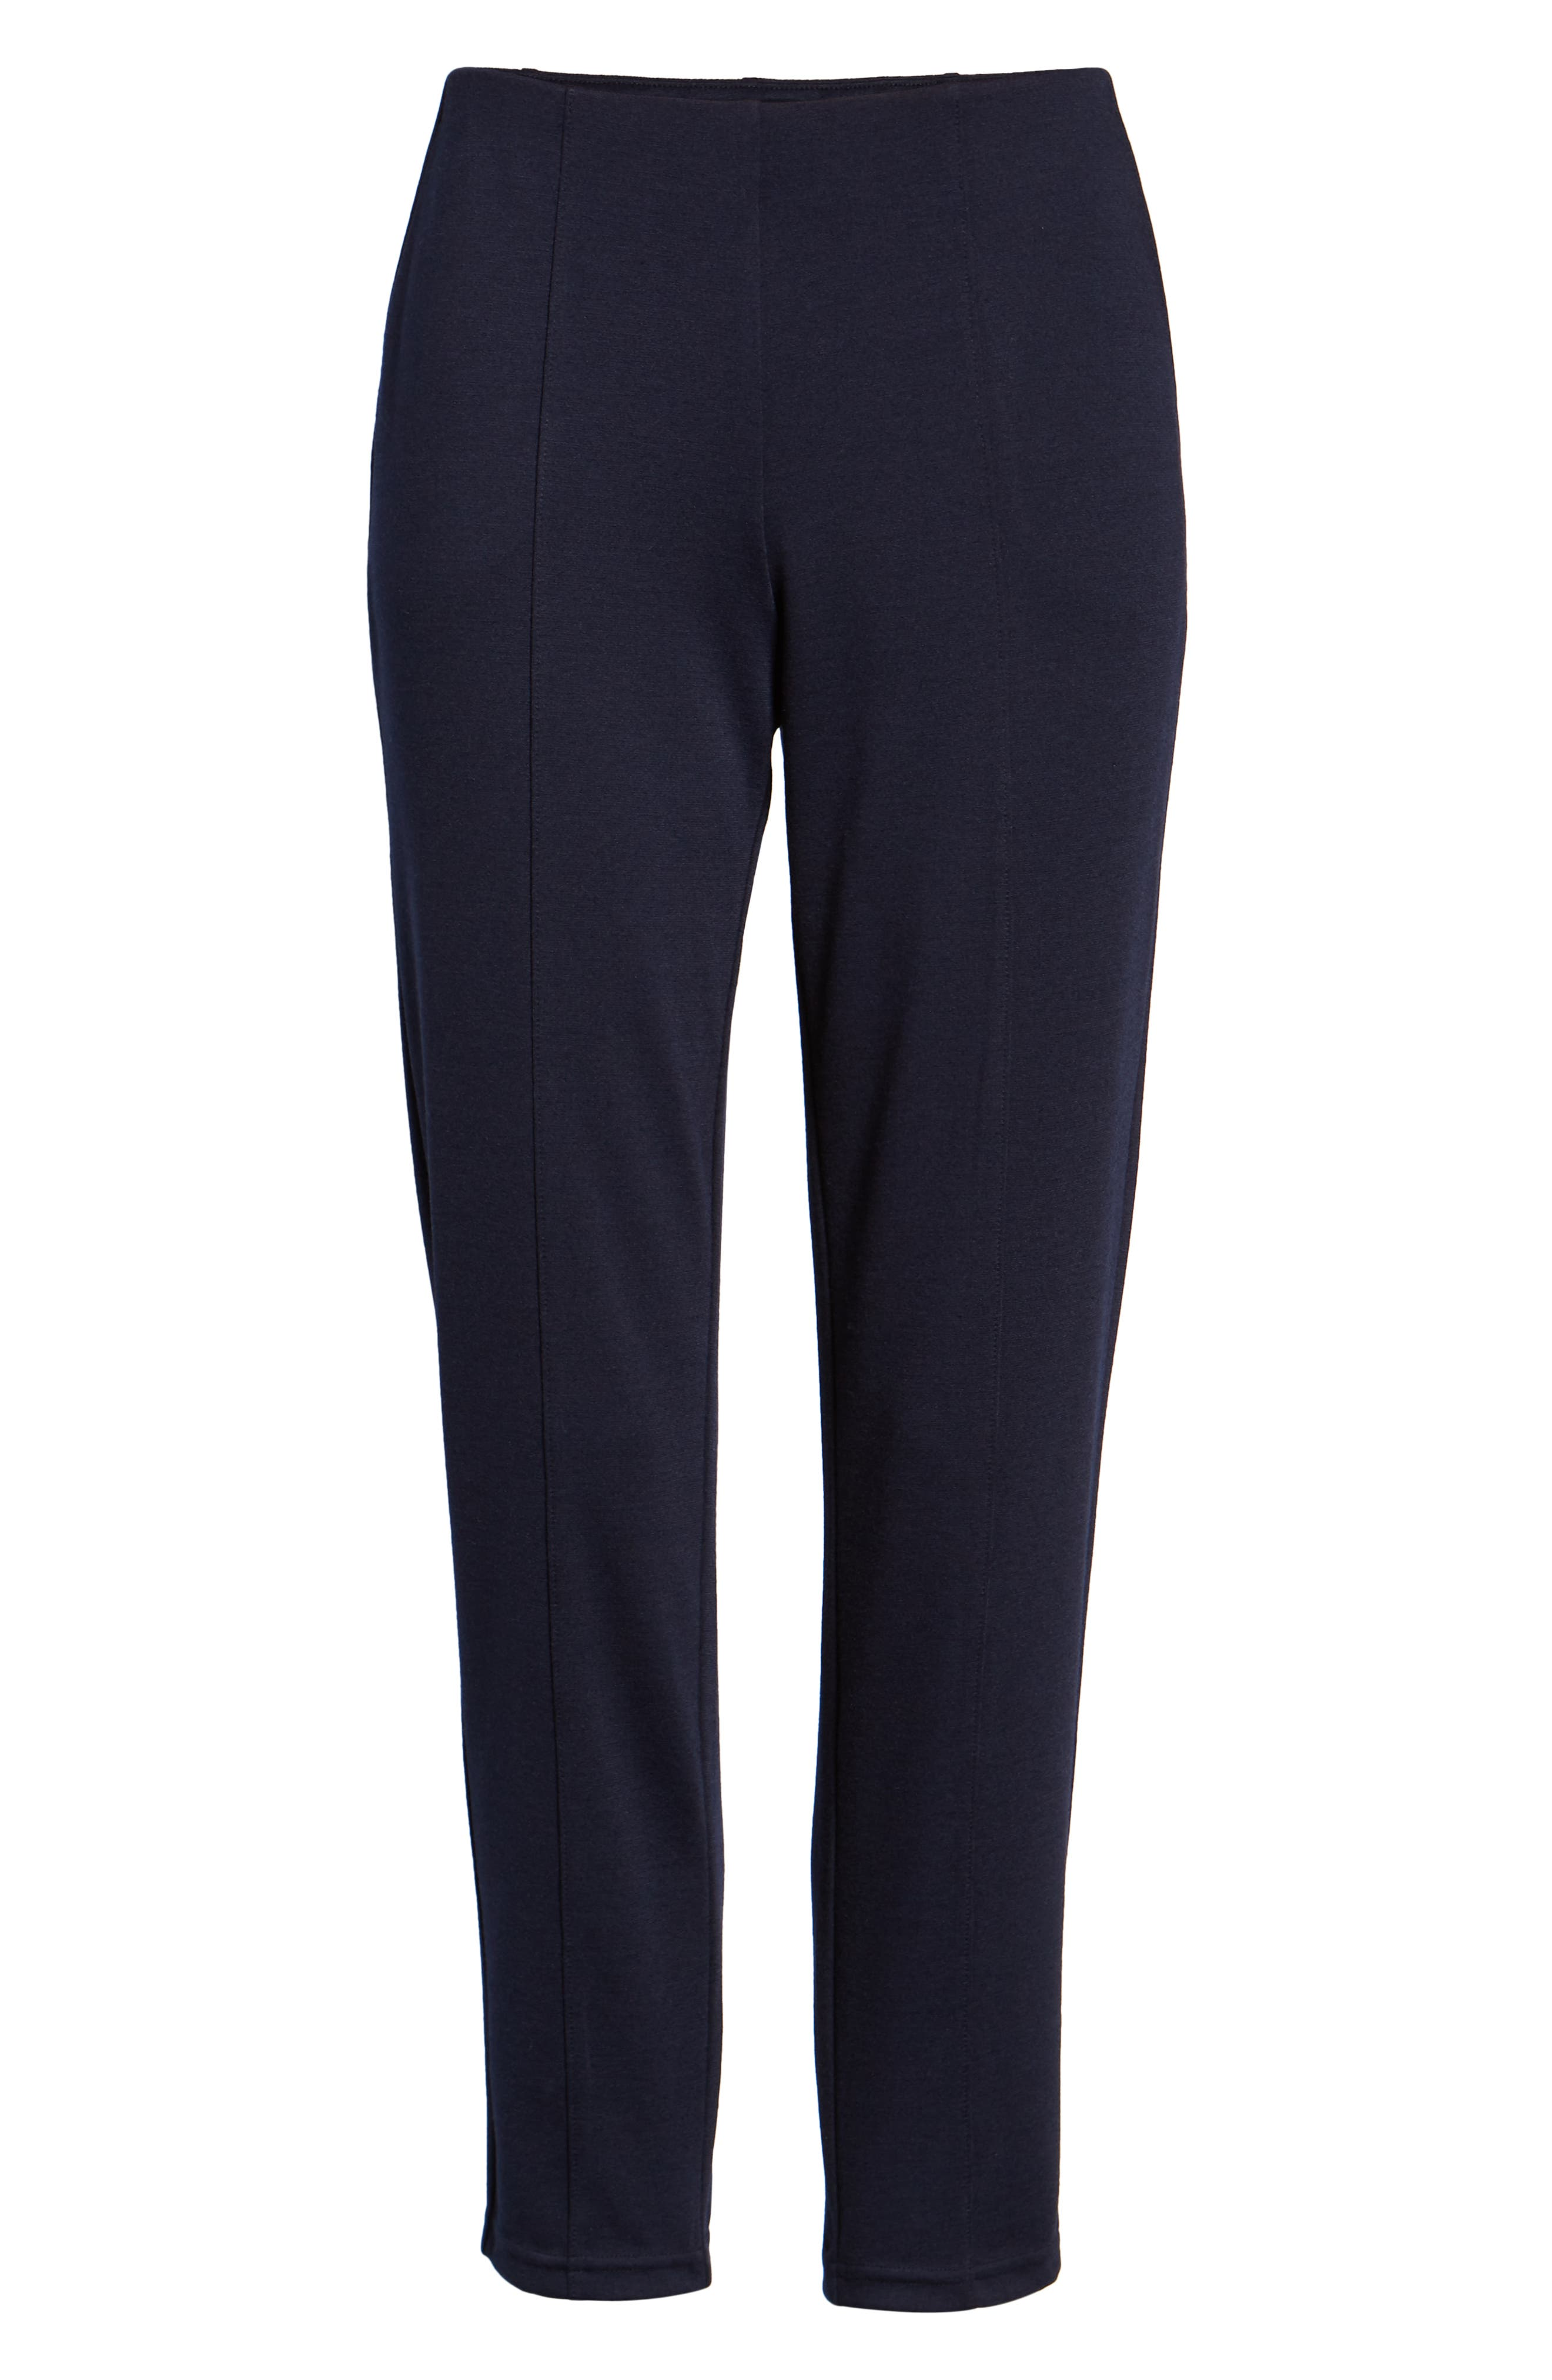 Luxe Seamed Ponte Skimmer Leggings,                             Alternate thumbnail 6, color,                             NAVY